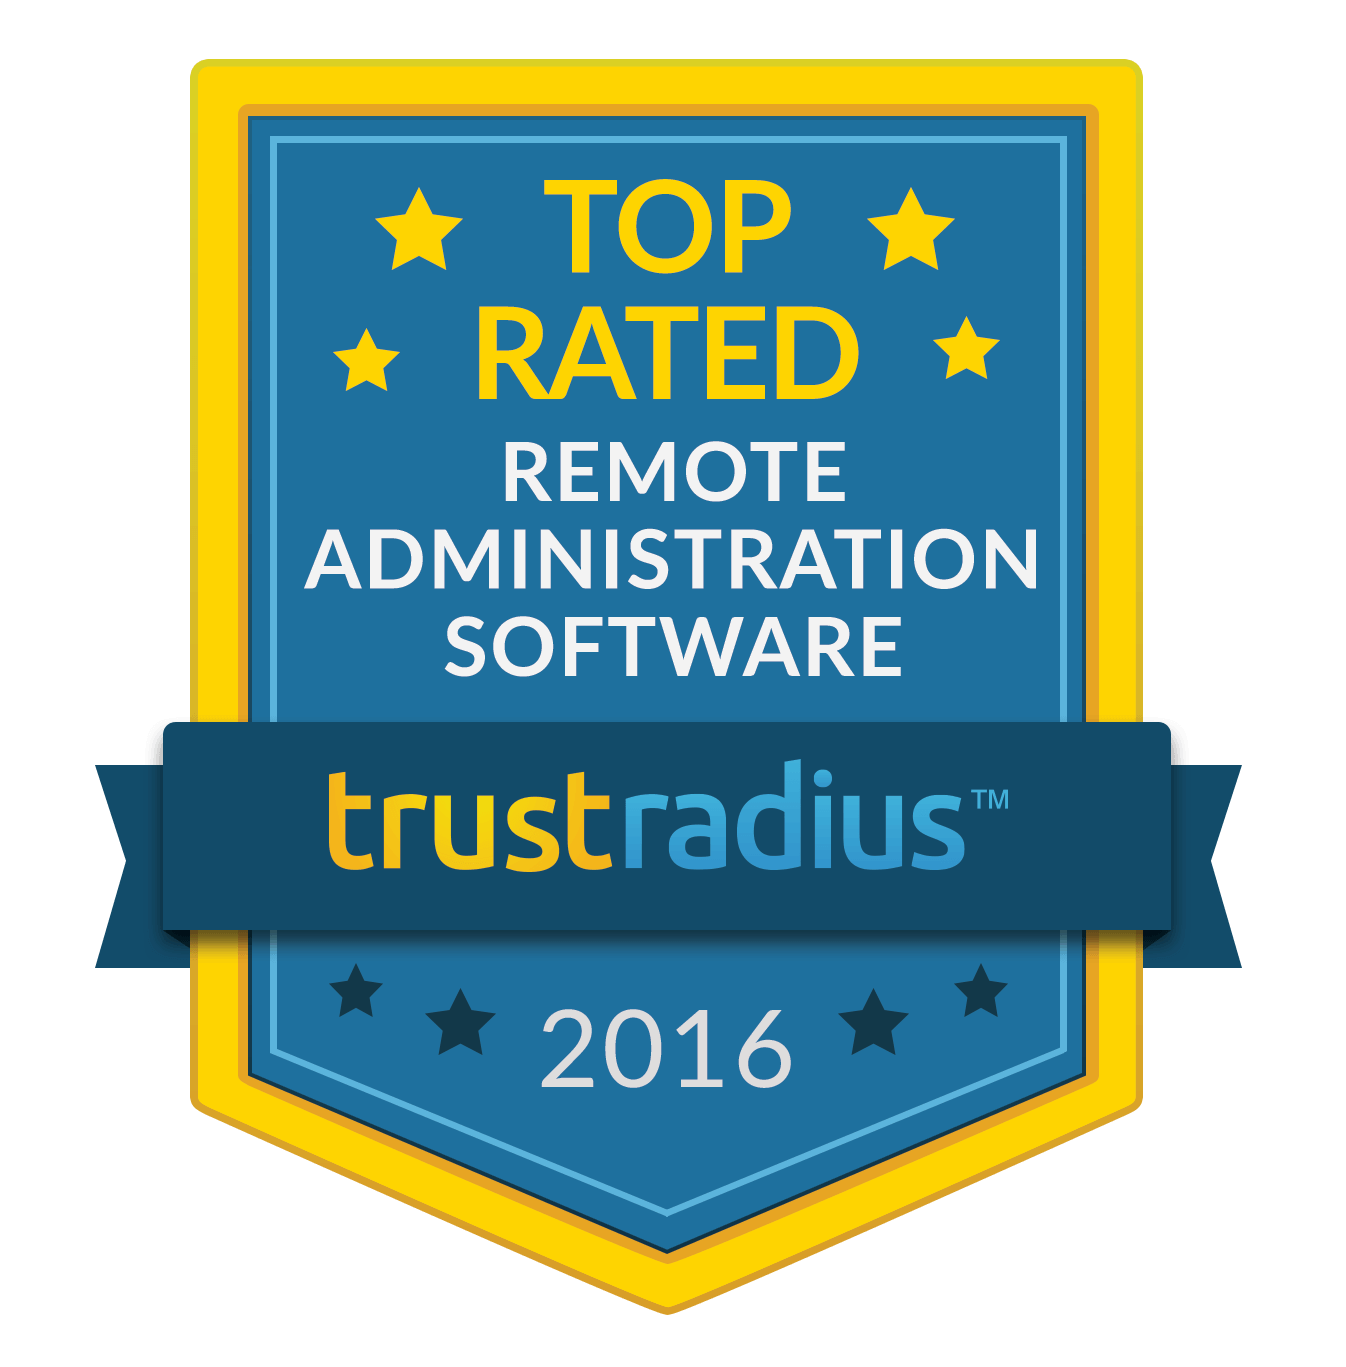 TrustRadius: Top Rated Remote Administration Software